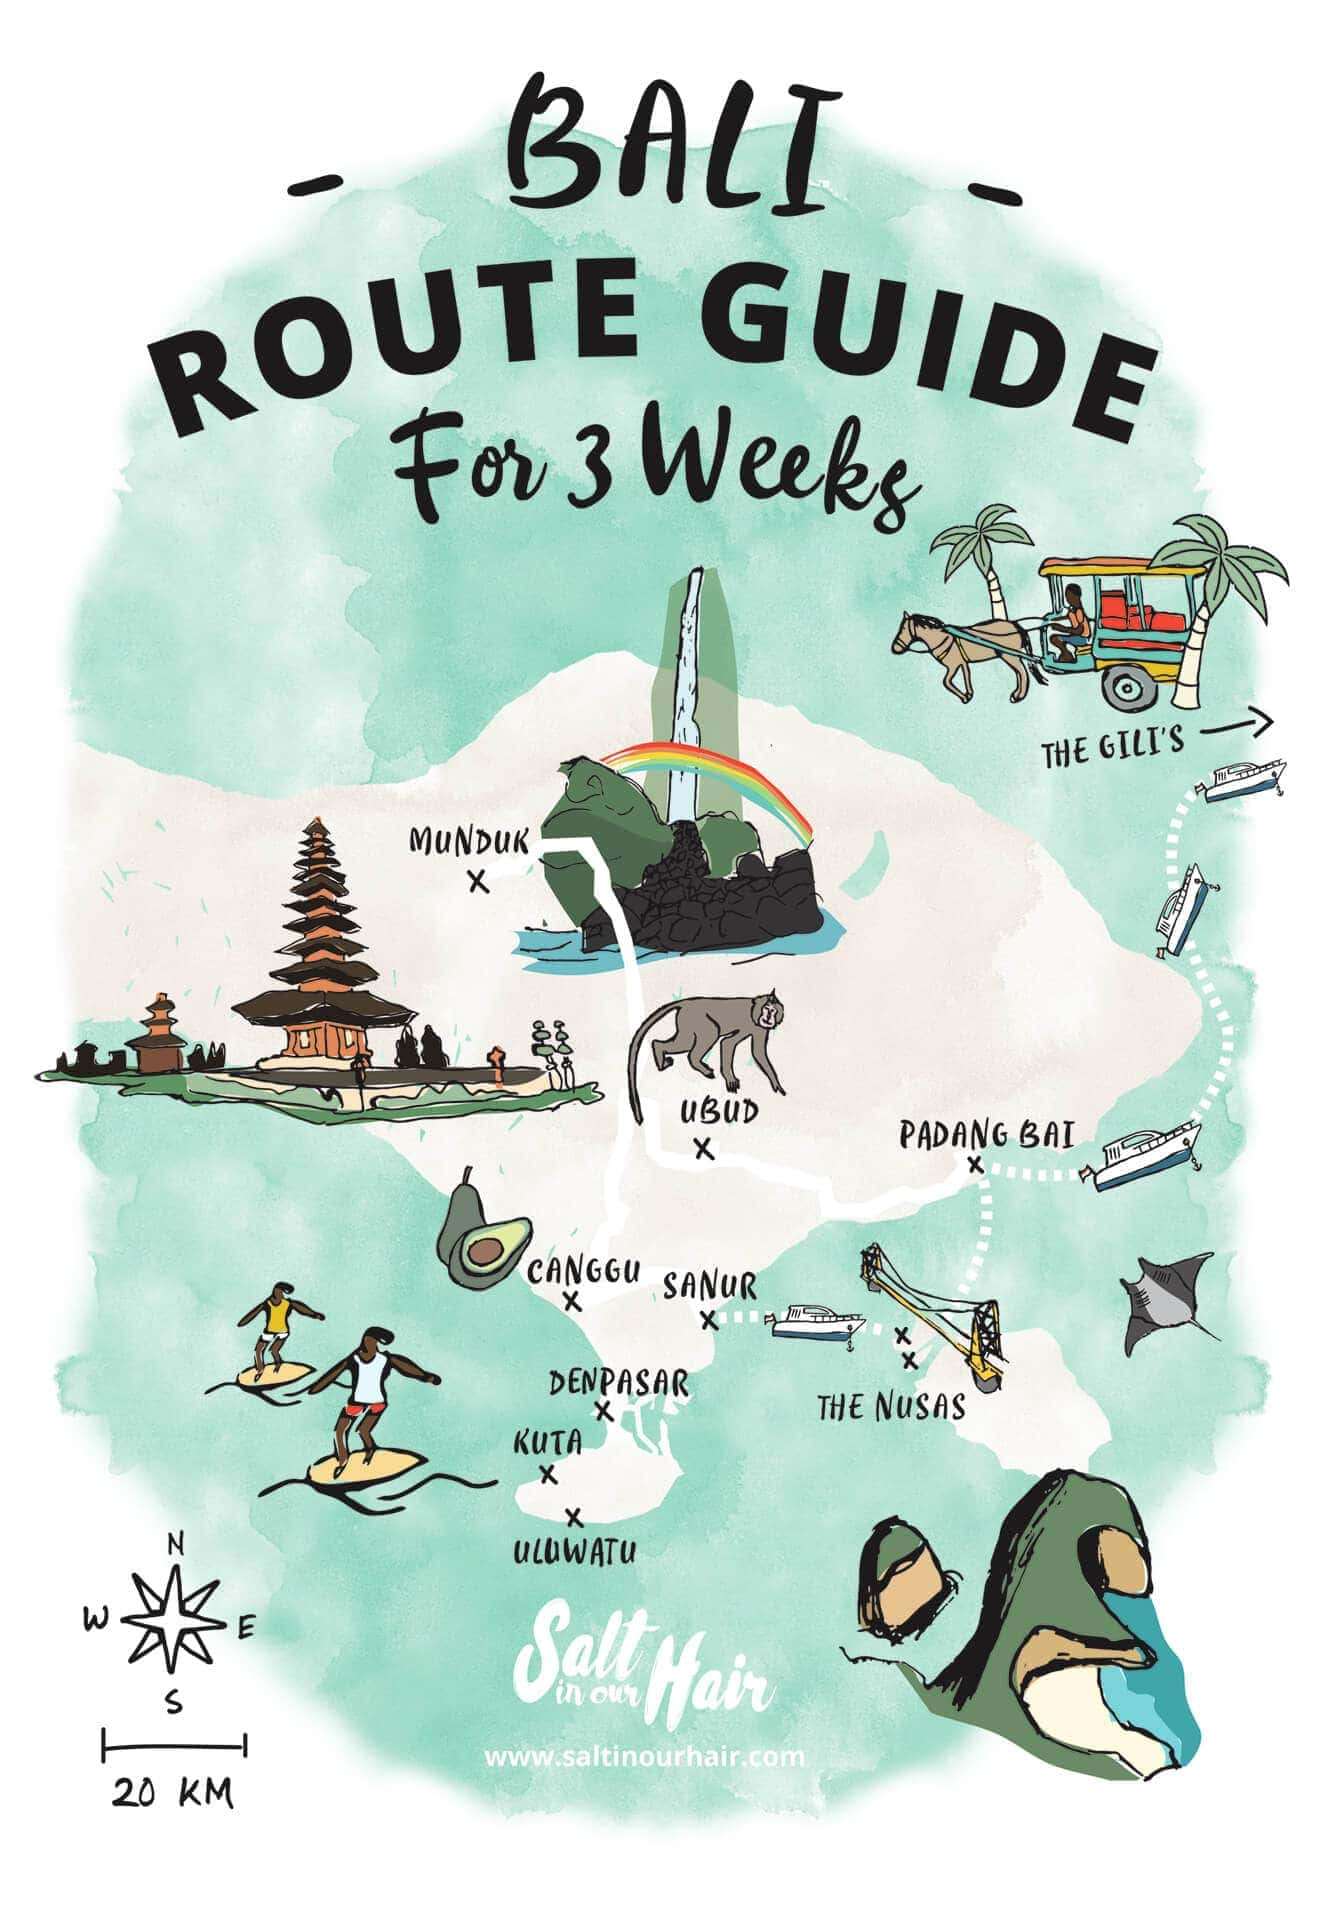 Bali Route Guide Ultimate 3 Week Guide On What To Do In Bali